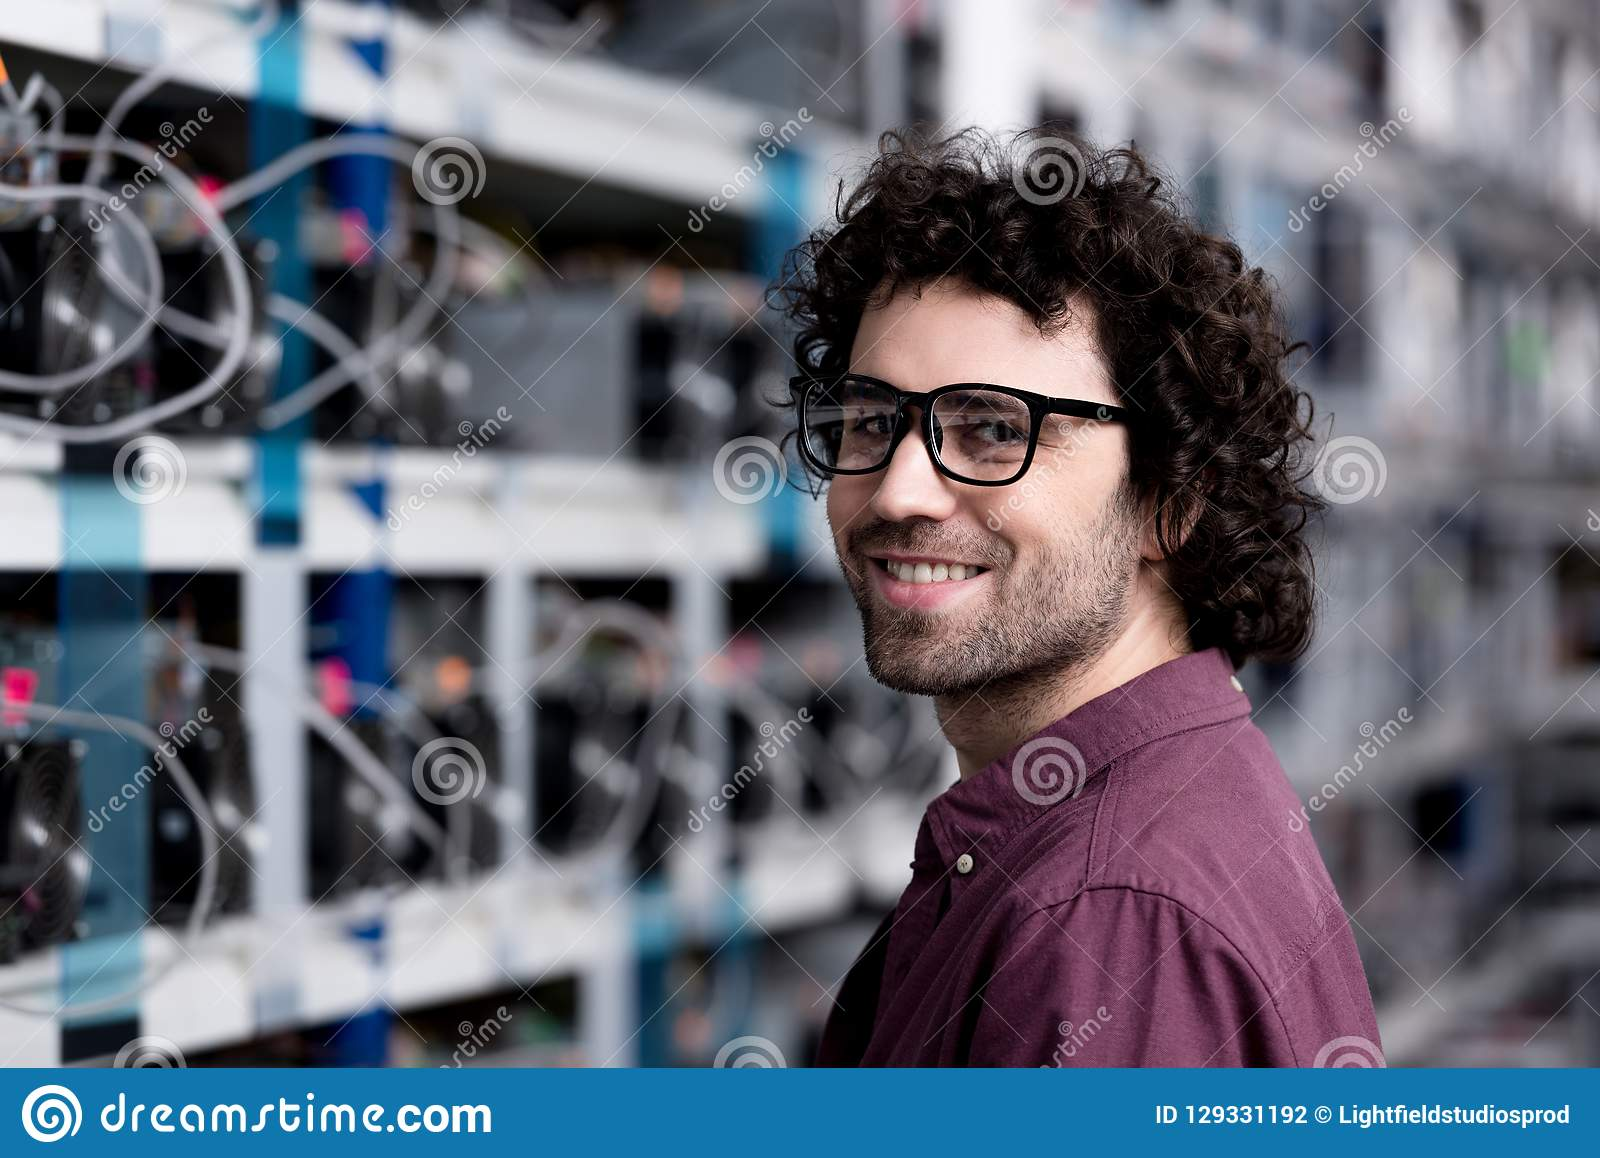 Happy young computer engineer at cryptocurrency mining farm looking at camera stock photography